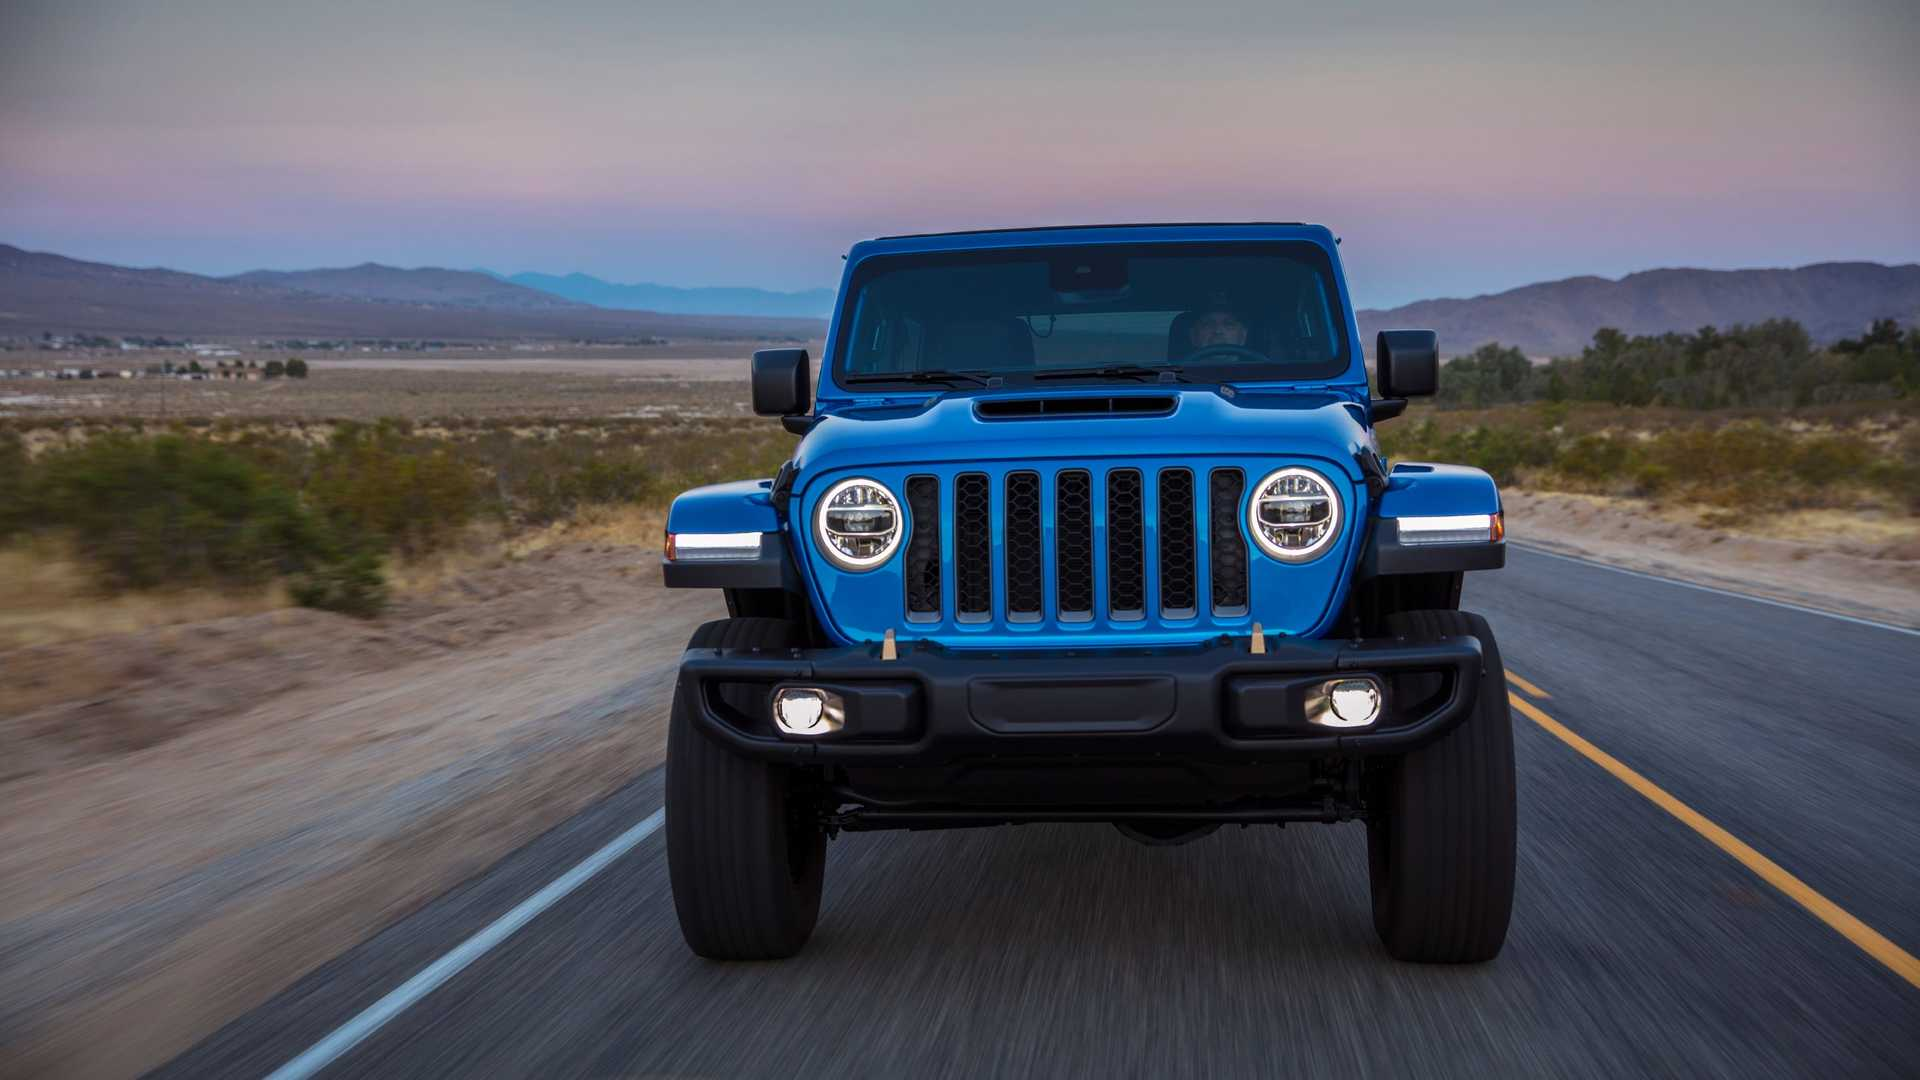 2021-jeep-wrangler-rubicon-392-front-view-8